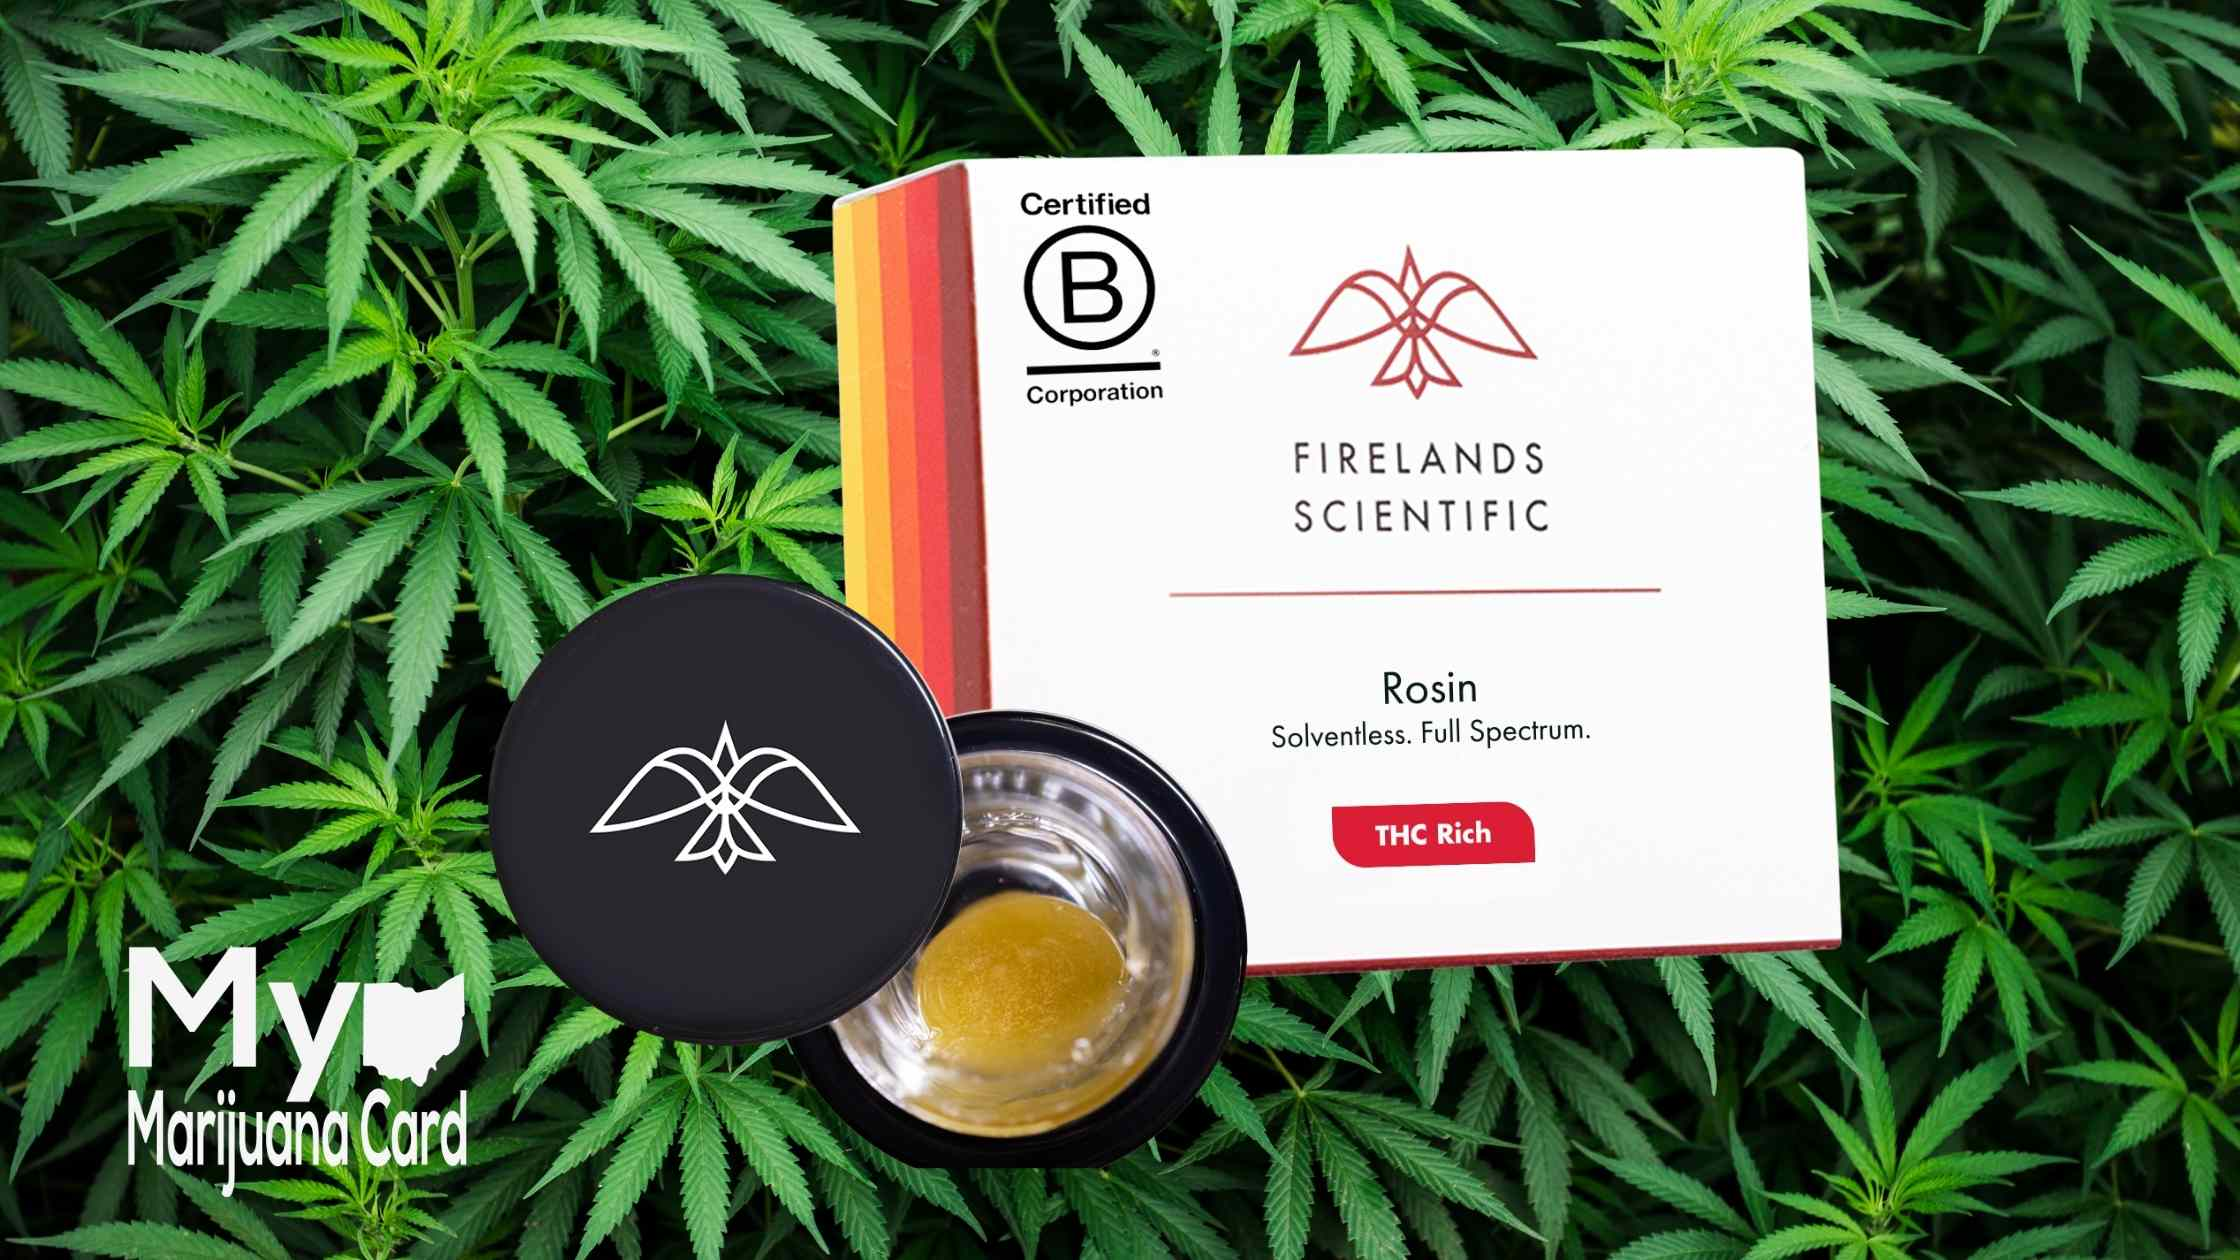 Live Resin VS Live Rosin, What's The Difference?